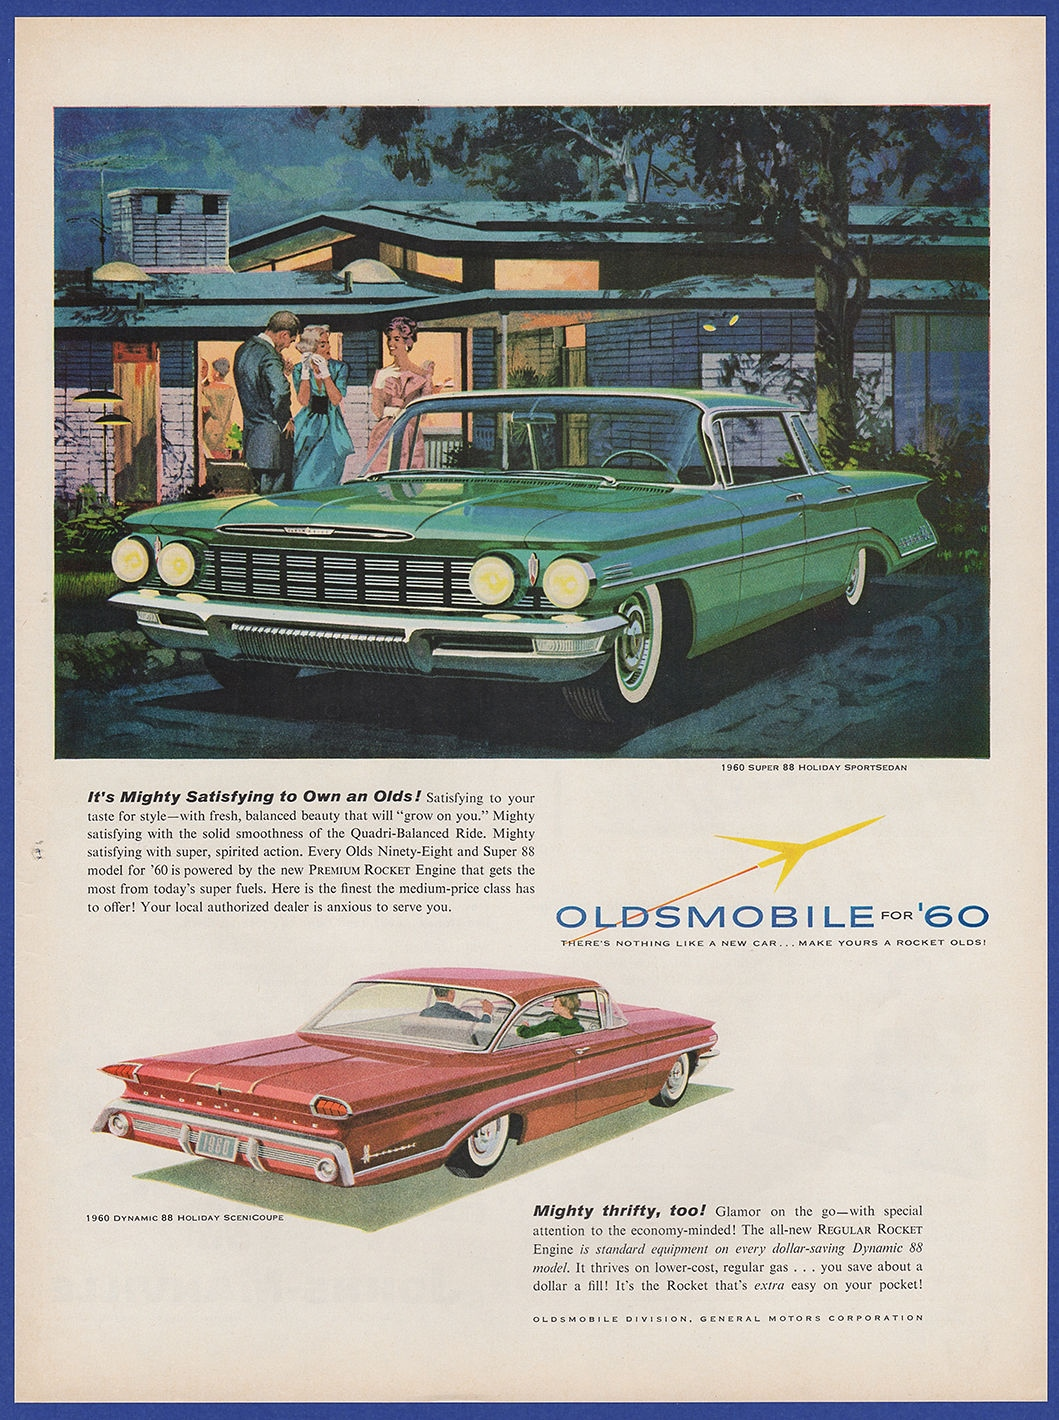 Vintage 1959 Oldsmobile For 1960 Super 88 Holiday Automobile Car 1950s American Cars I Combine Shipping At No Extra Charge Add 3 Or More Print Ads To The Cart And Receive Free Checkout